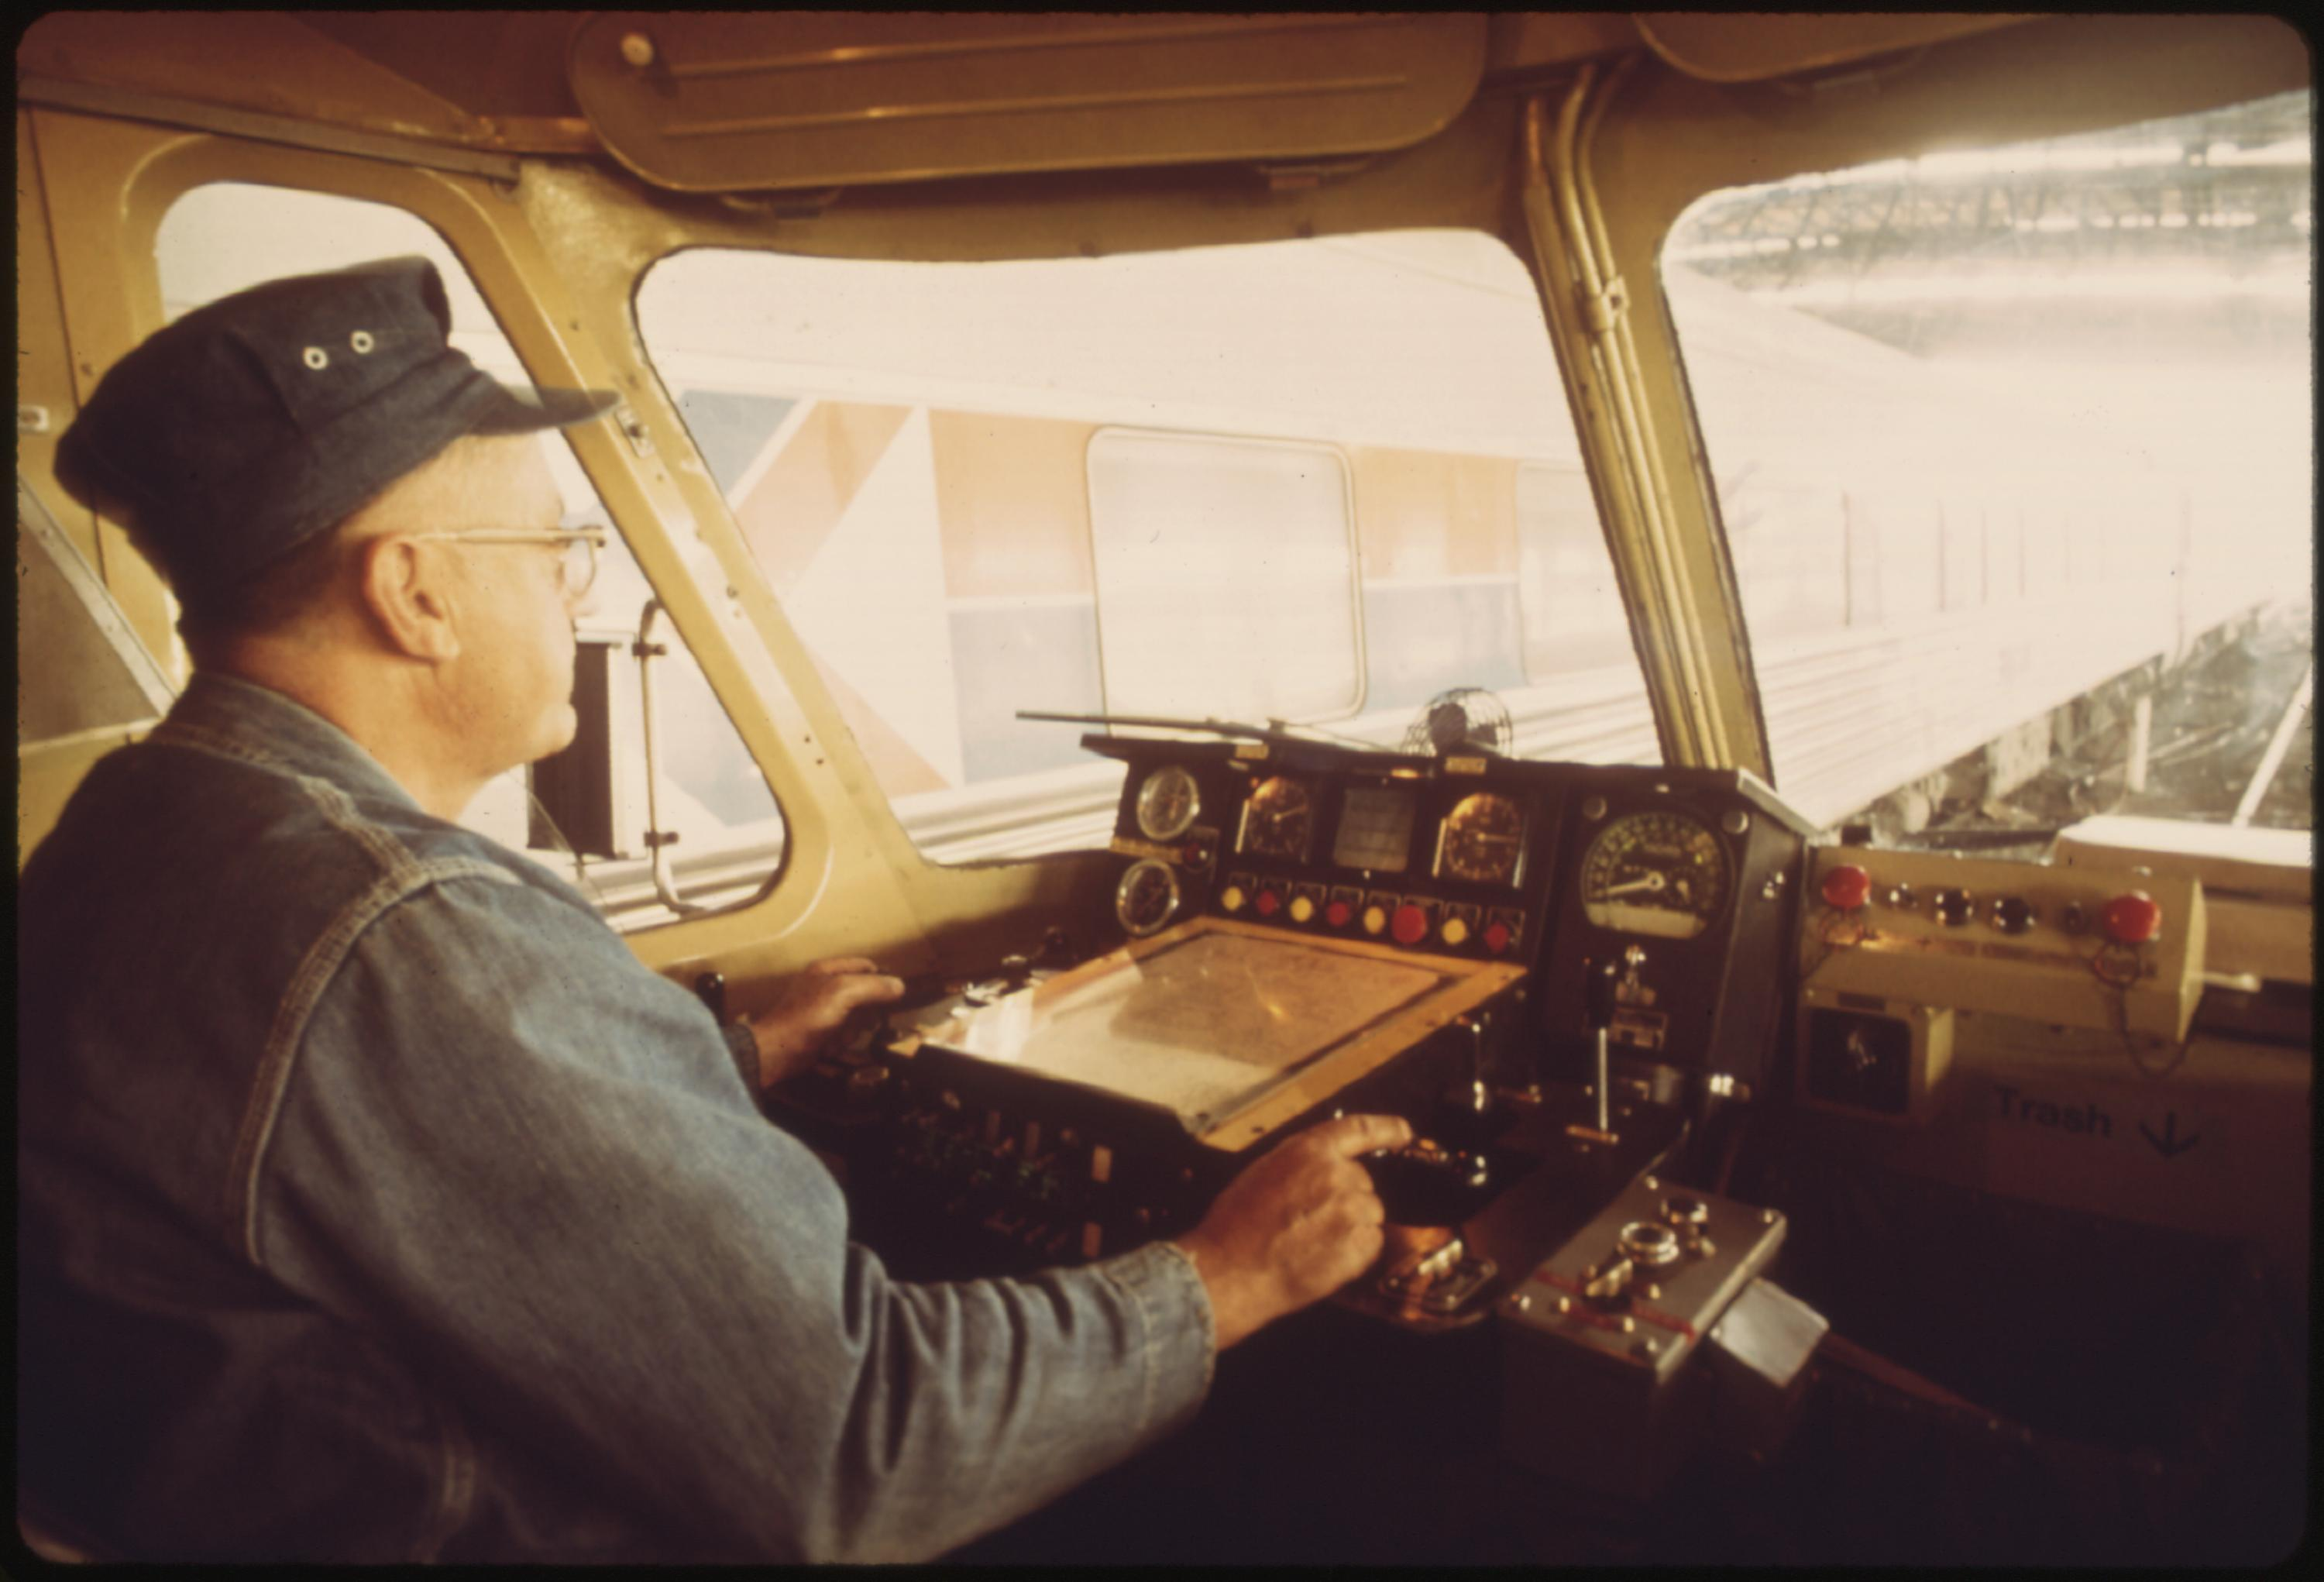 Engineer at the controls of the Amtrak turboliner passenger train at St. Louis, Missouri, June 1974